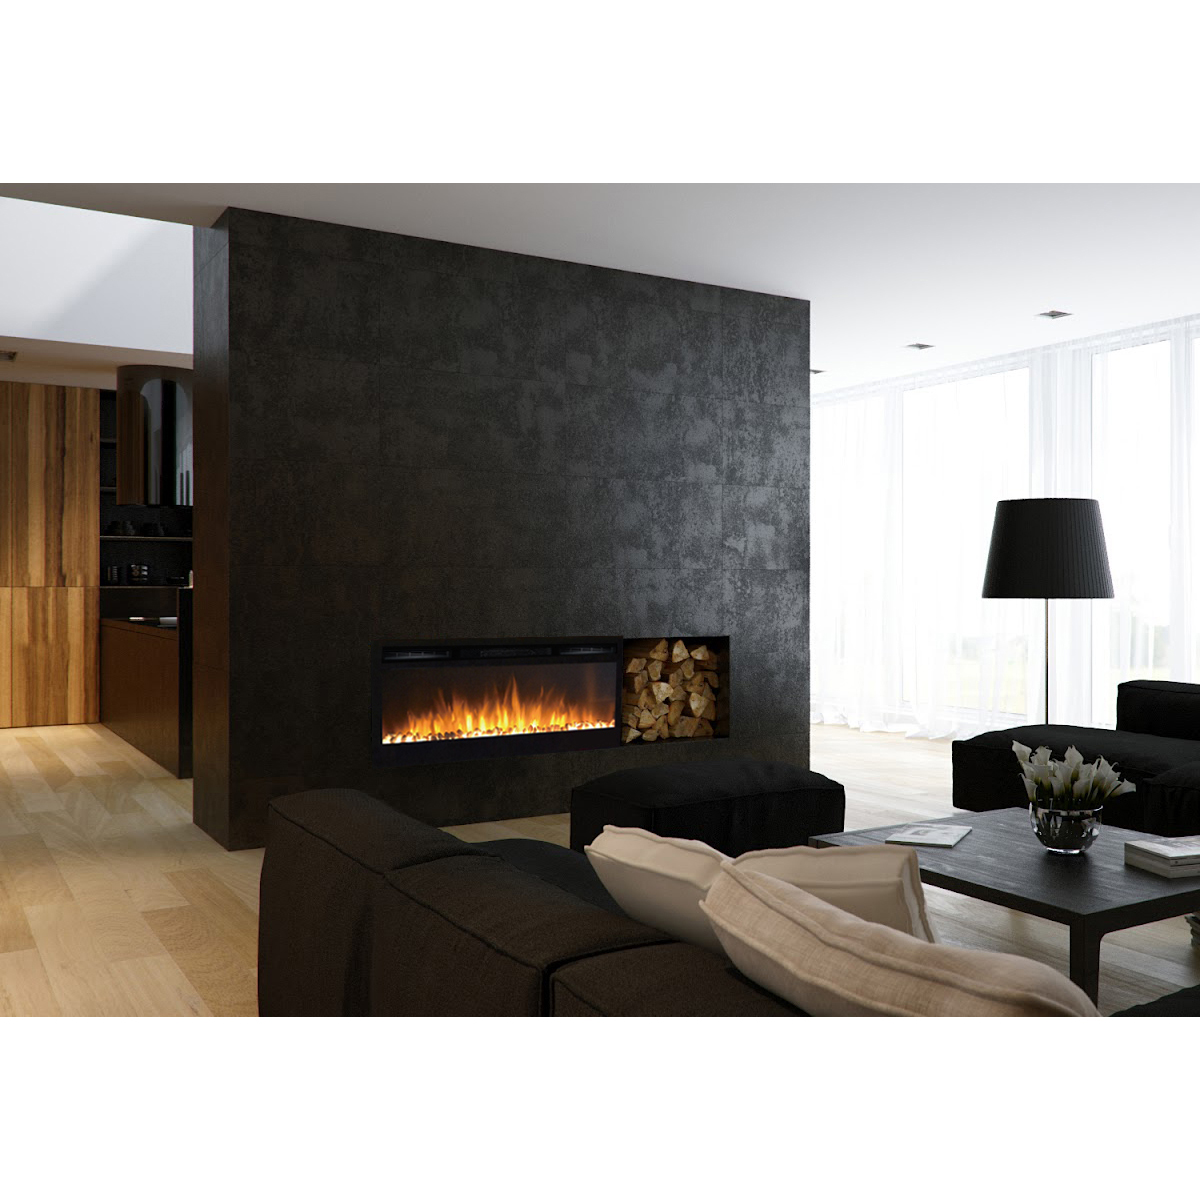 Regal Flame Lexington 35 Inch Built-in Ventless Heater Recessed Wall Mounted Electric Fireplace - Pebble-Regal Flame Lexington 35 Inch Built-in Ventless Heater Recessed Wall Mounted Electric Fireplace - Pebble If you want to add a dynamic and vivacio